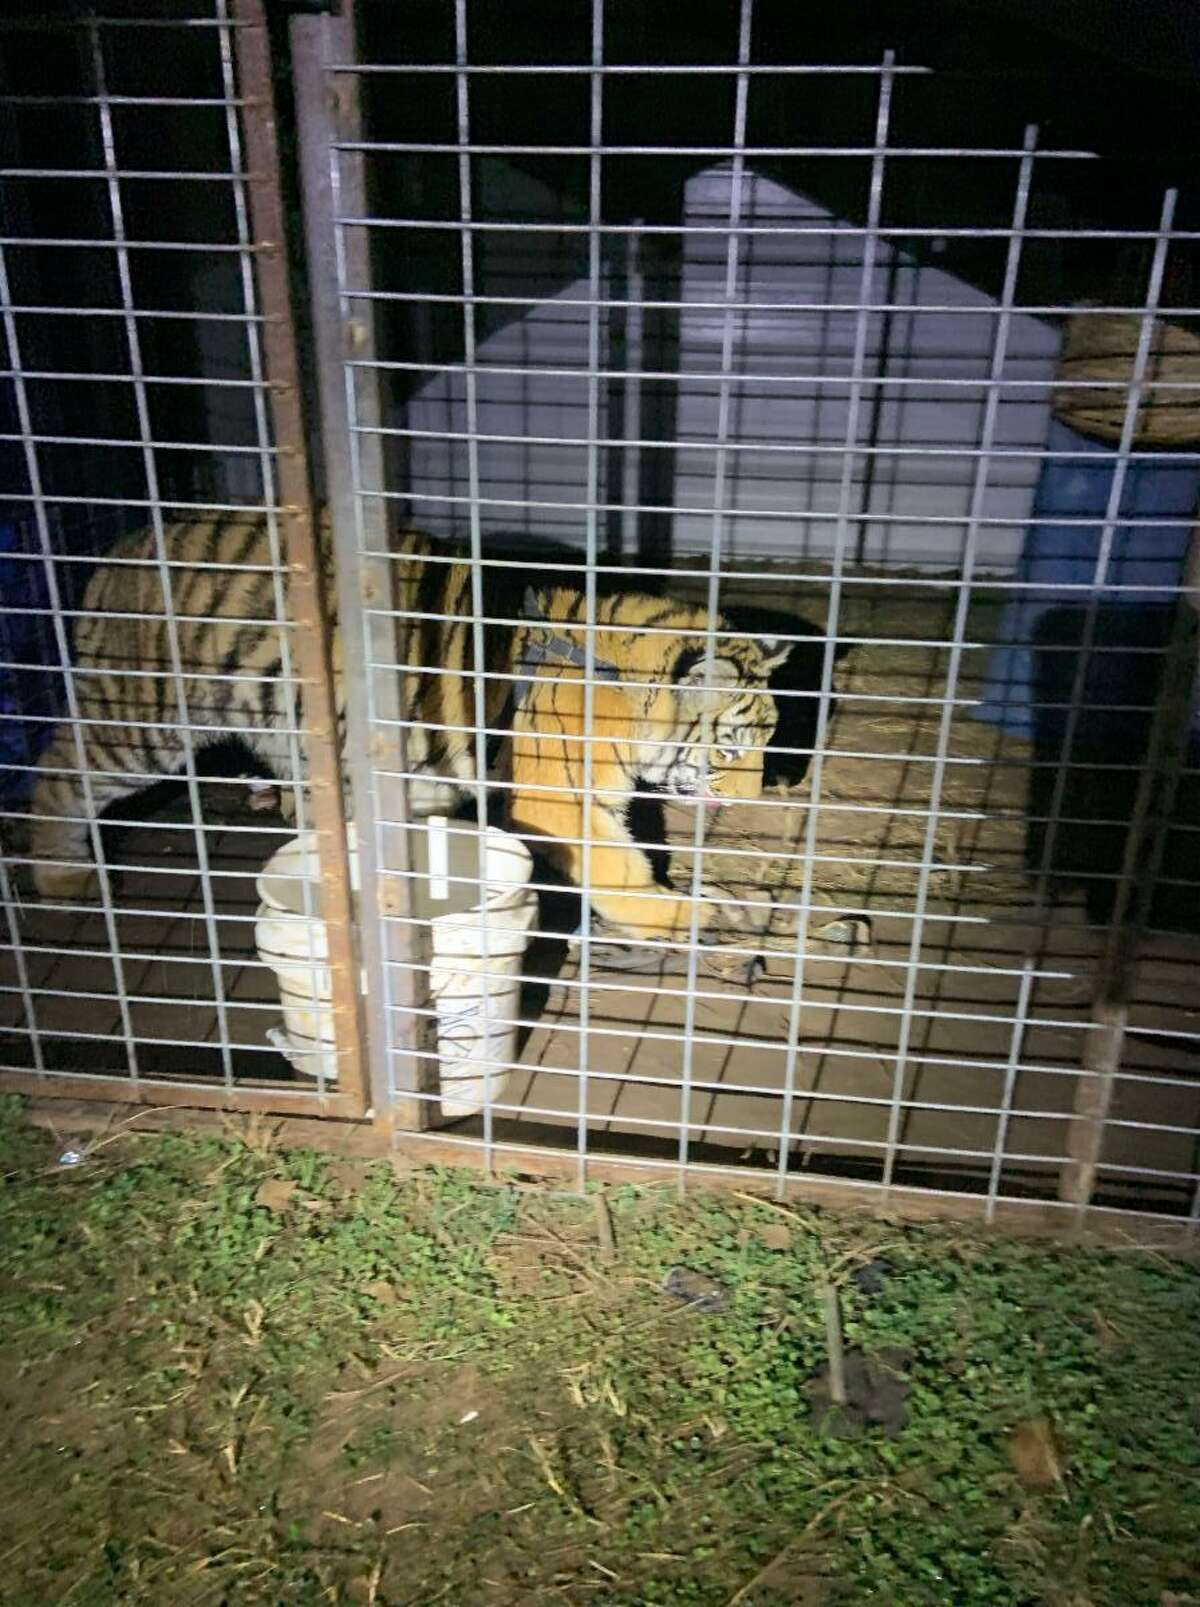 A caged tiger in Southwest Bexar County was rescued Saturday evening.